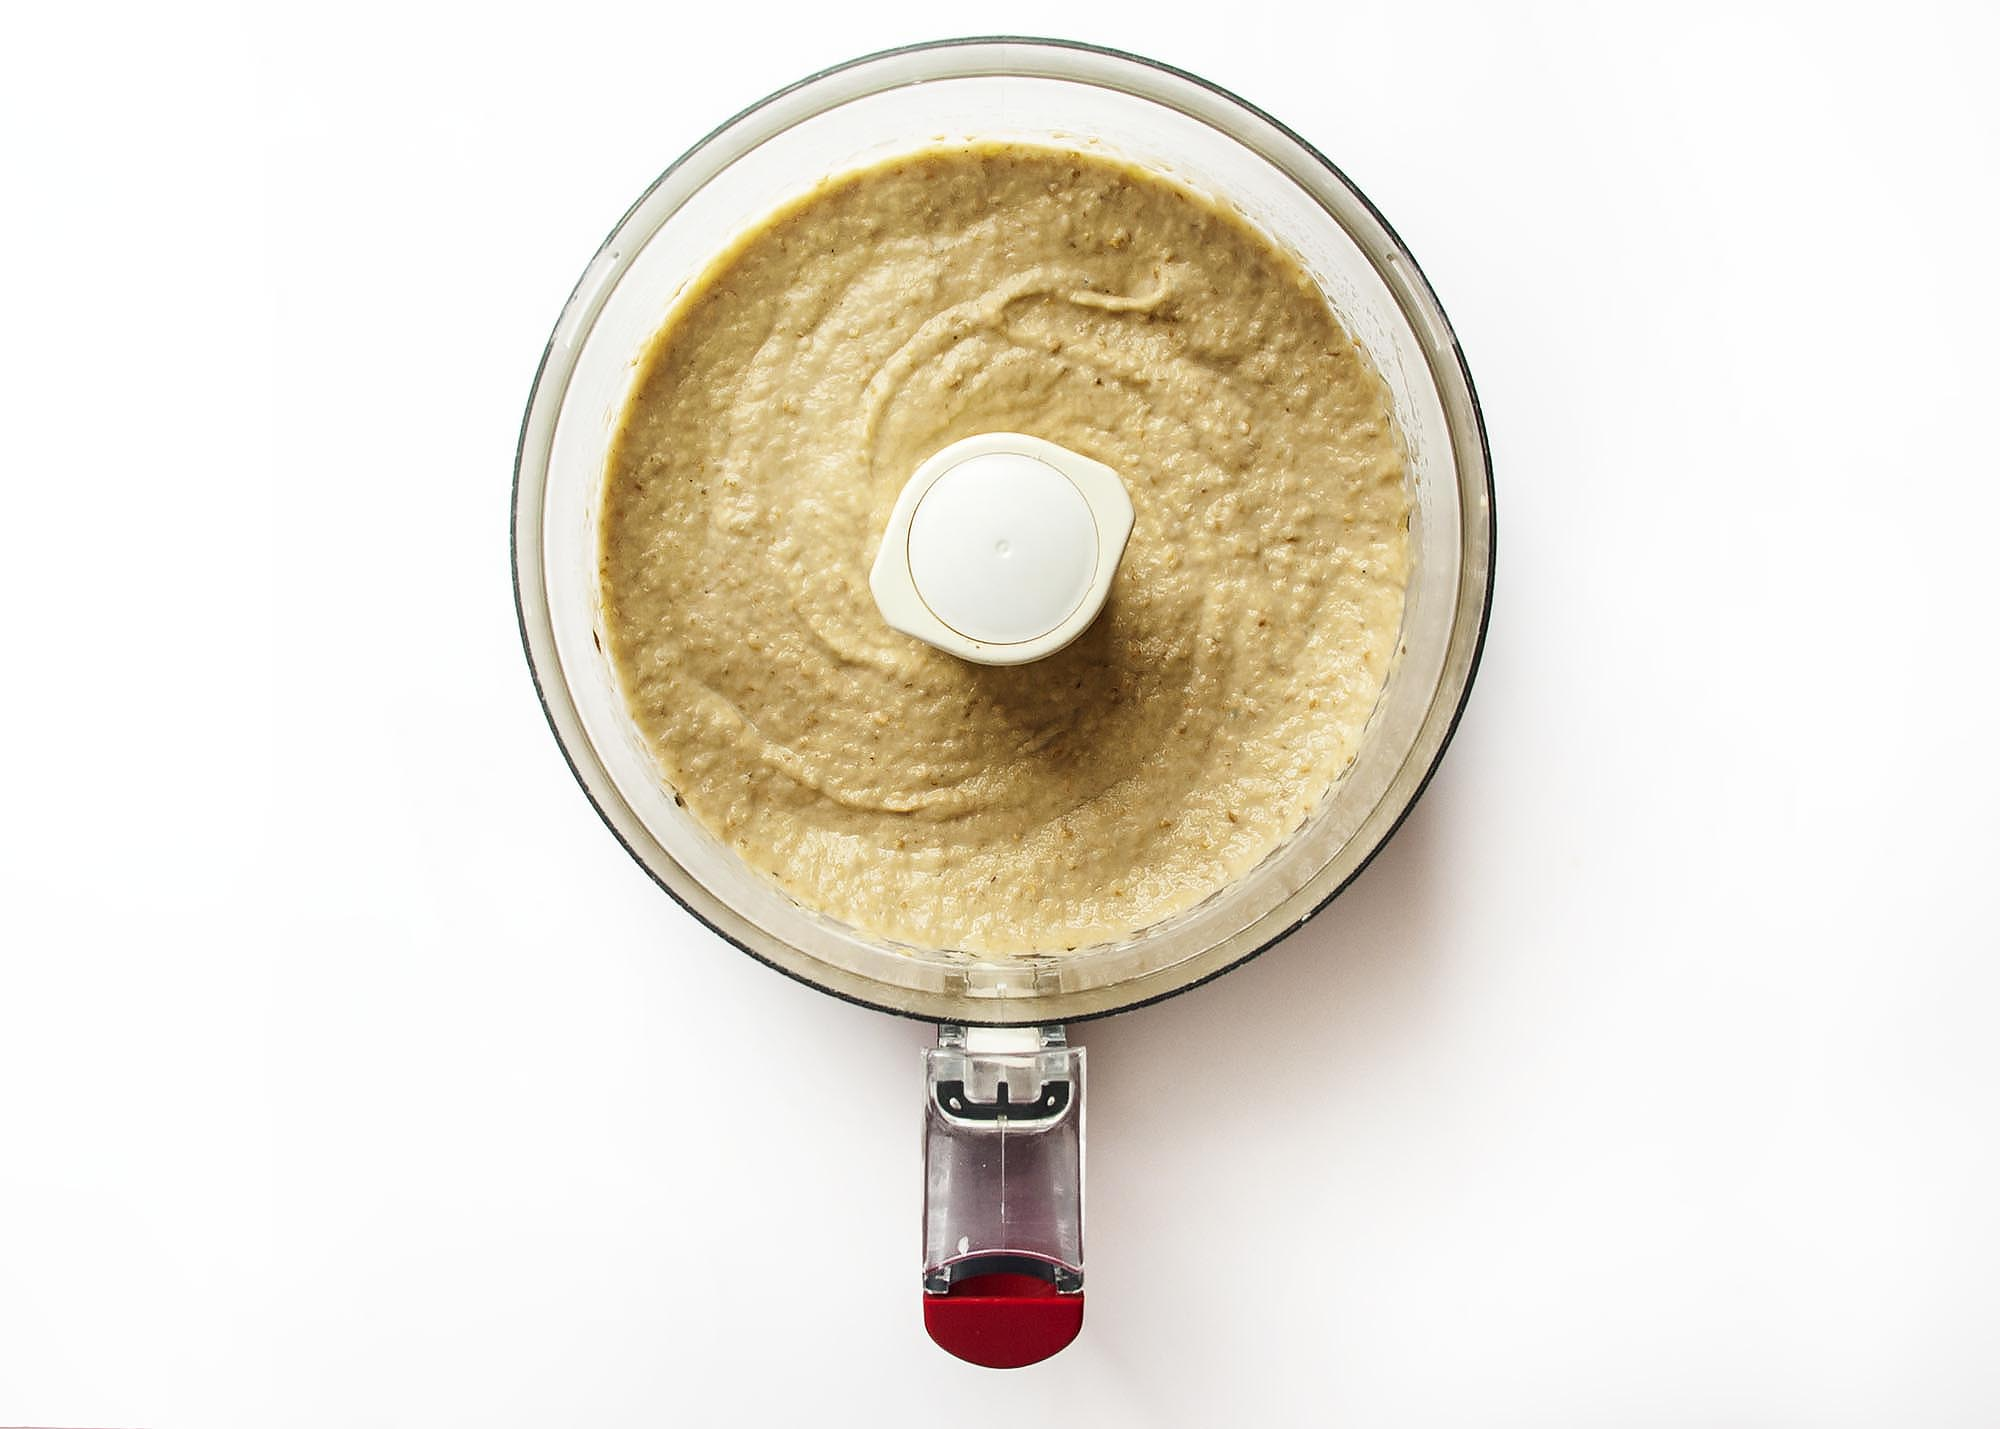 Baba Ghanoush - This creamy, smoky eggplant dip lightened with a bit of mayonnaise will have you going back for more.   justalittlebitofbacon.com